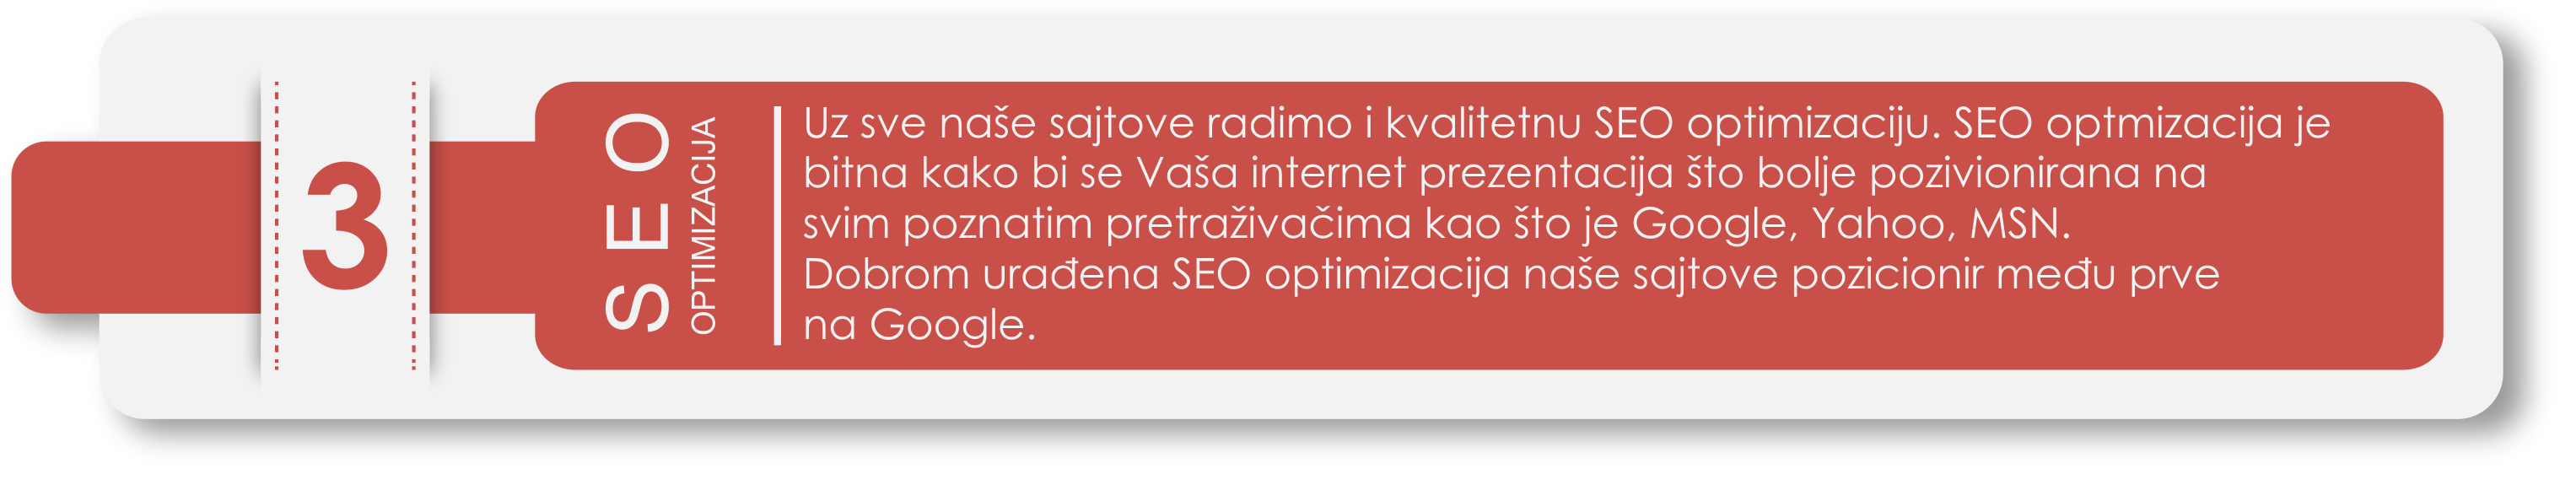 Slika seo optimizacija